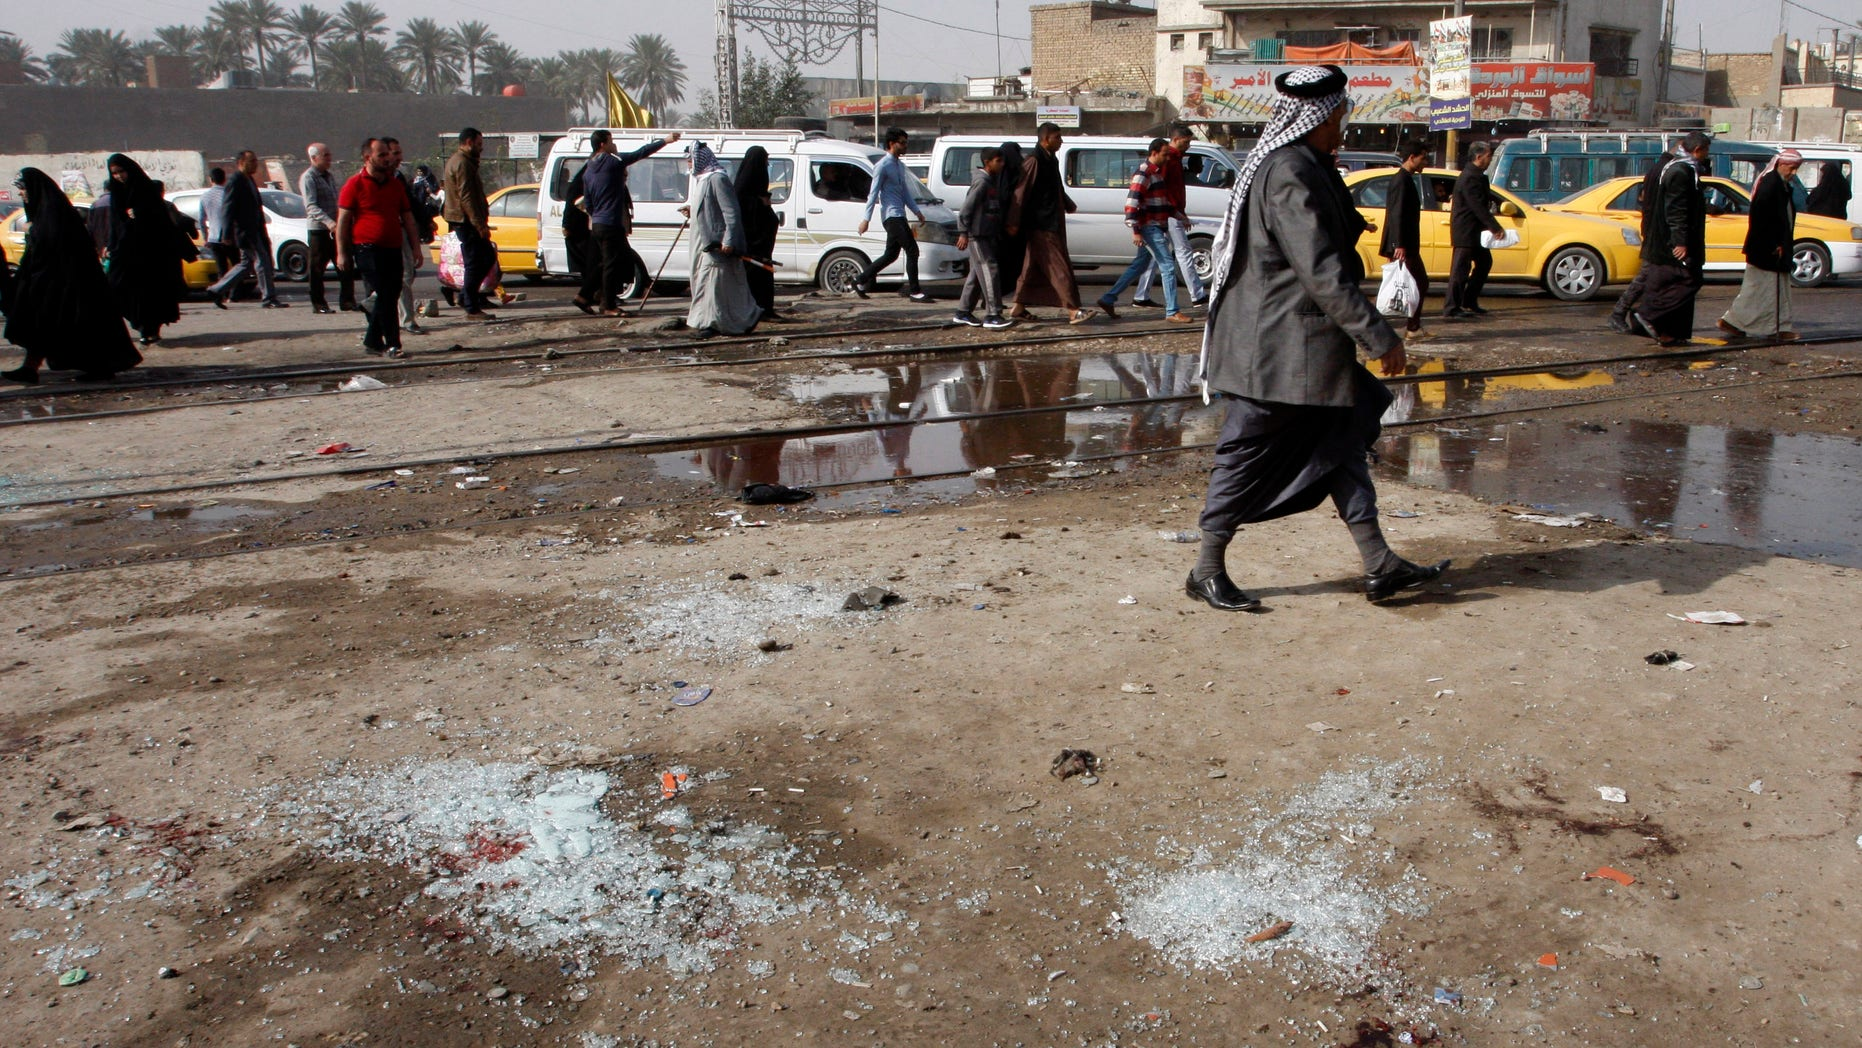 Feb. 9, 2015 - Broken glass at the scene of a suicide bomb attack at Adan Square, in a predominantly Shiite part of Baghdad, Iraq. The attack and another in the northeastern suburb of Husseiniyah in Baghdad killed at least 22 people and wounded dozens.